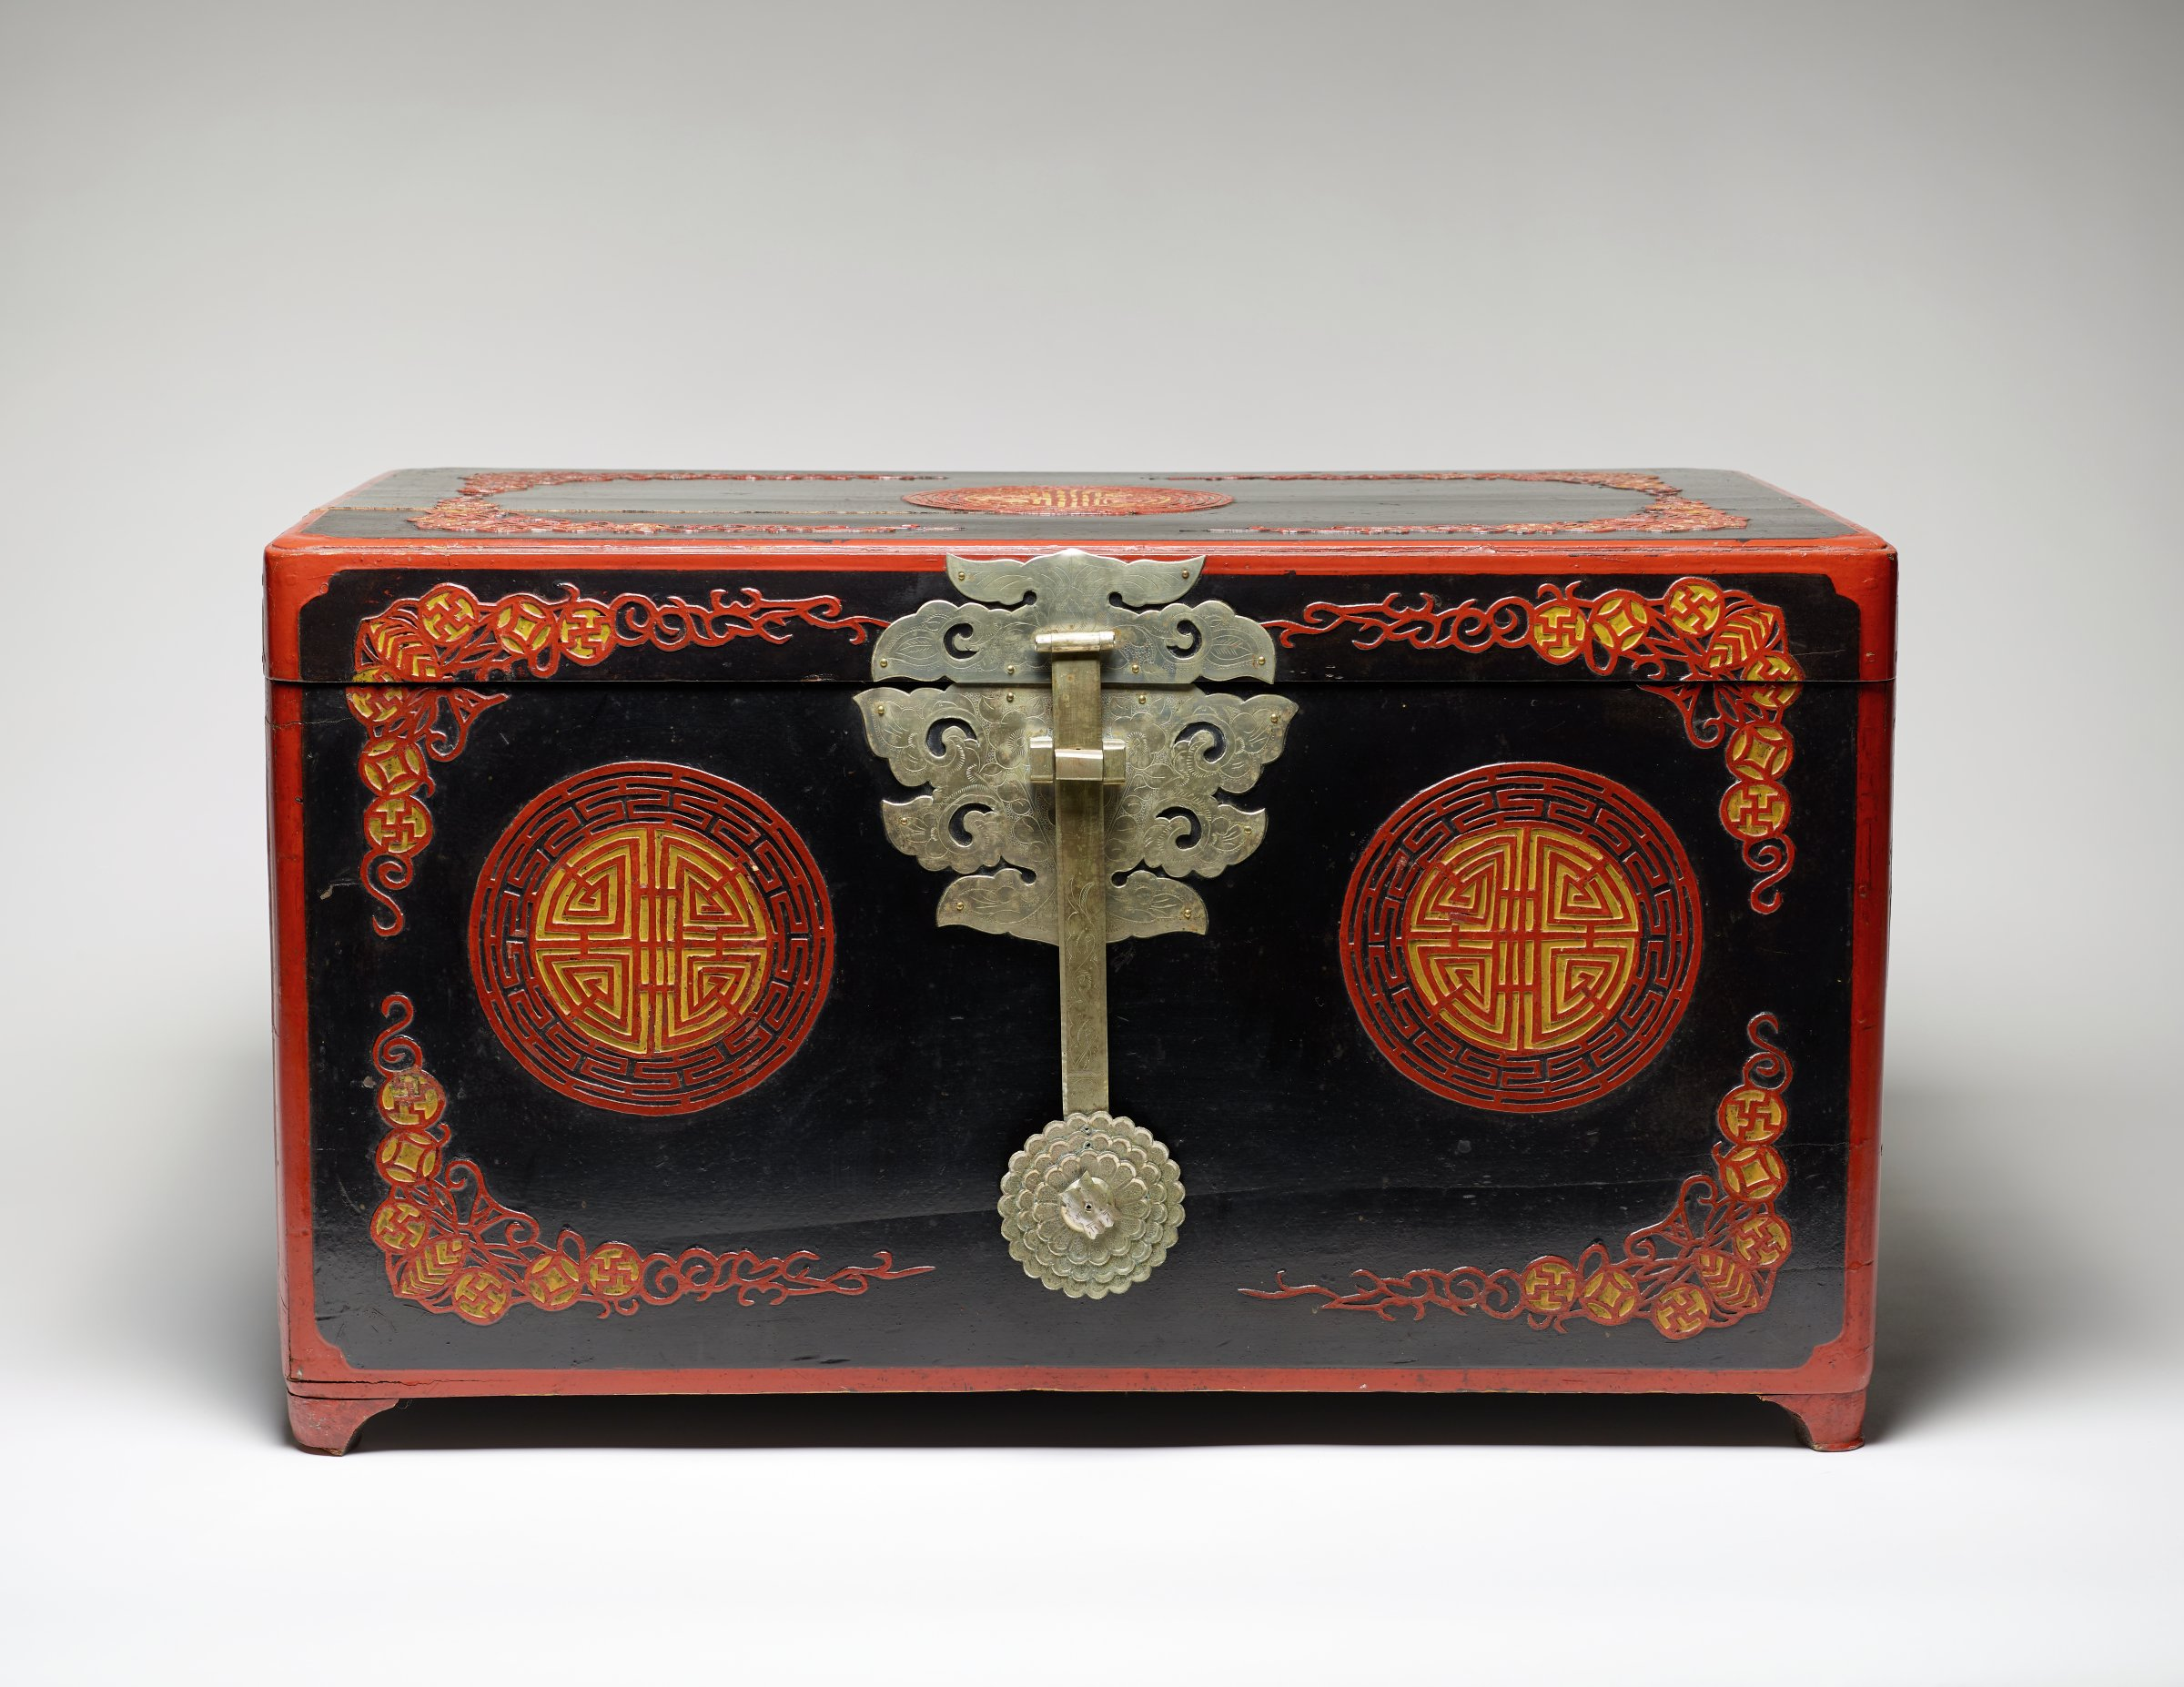 Wedding Document Box with Butterfly, Coins and Longevity Motifs, Korea, wood, silver and lacquer